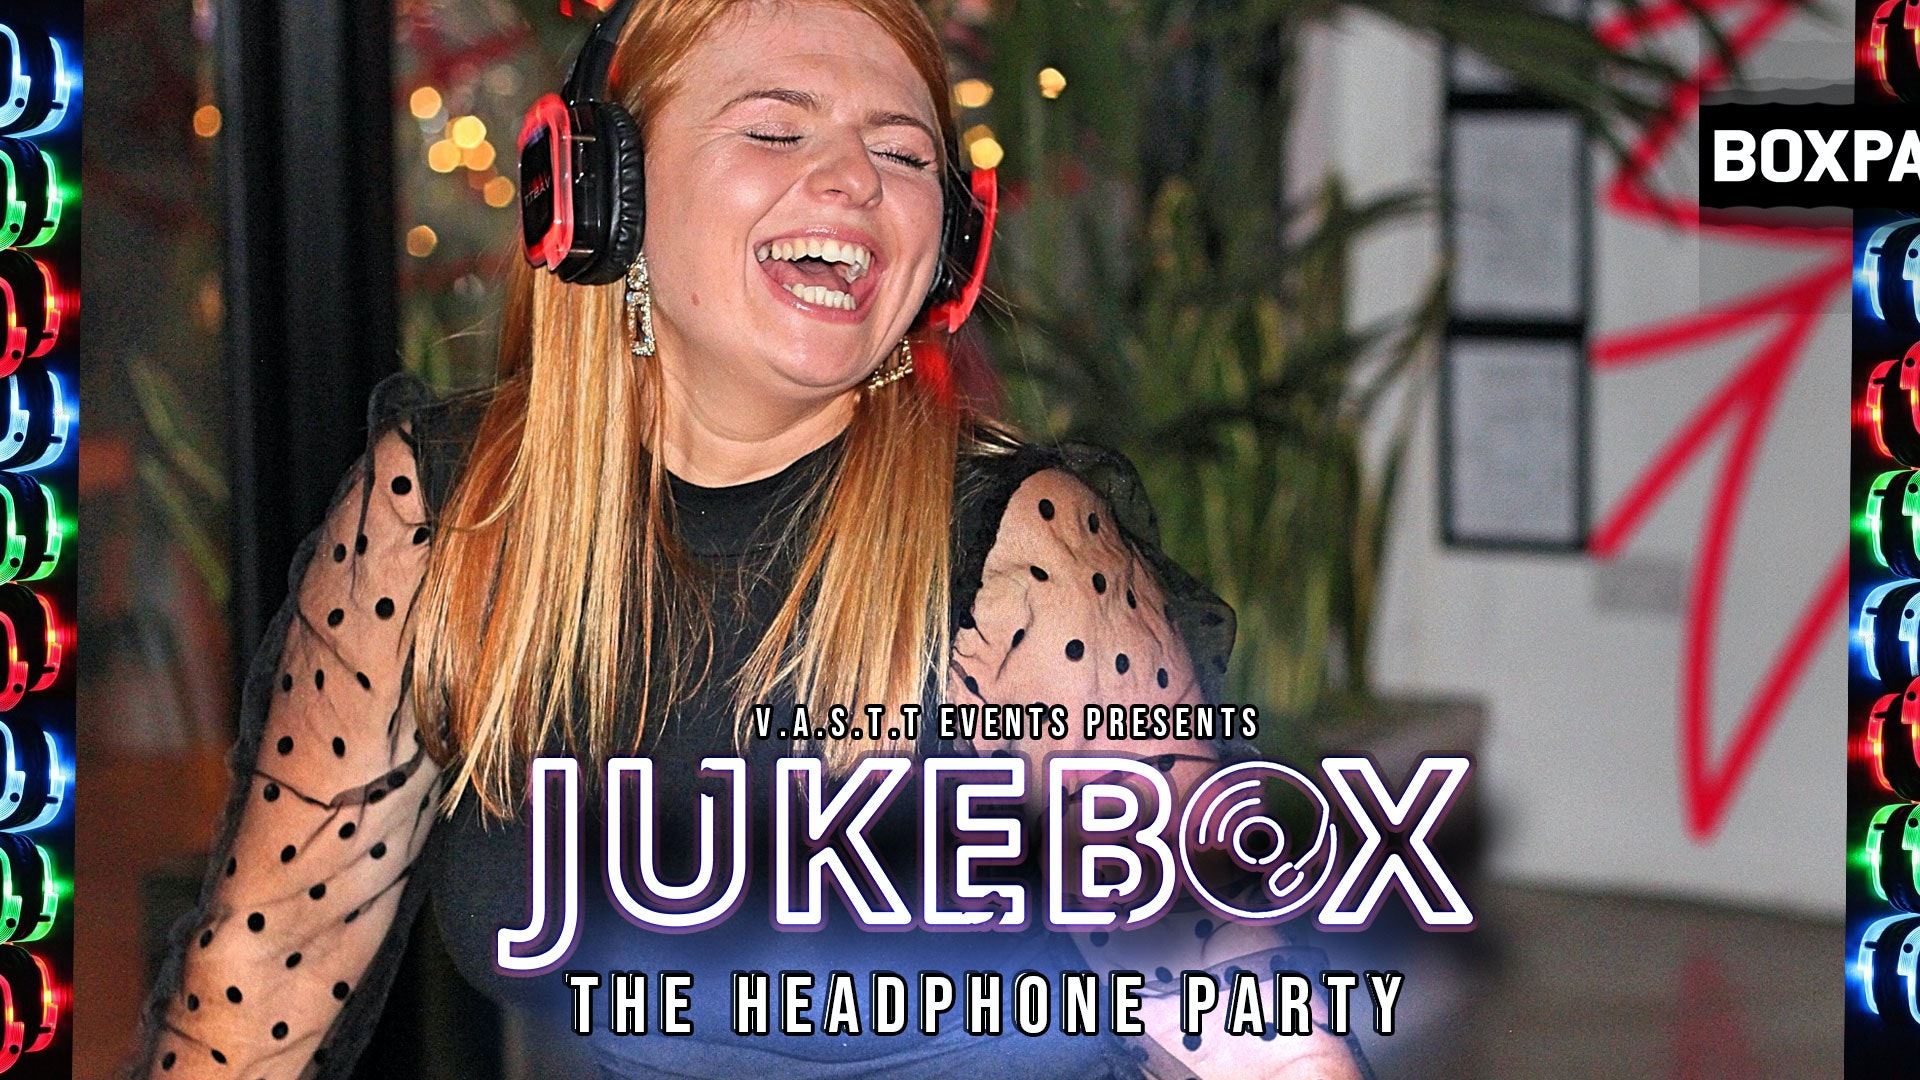 Jukebox-  The Headphone Party @Boxpark Shoreditch